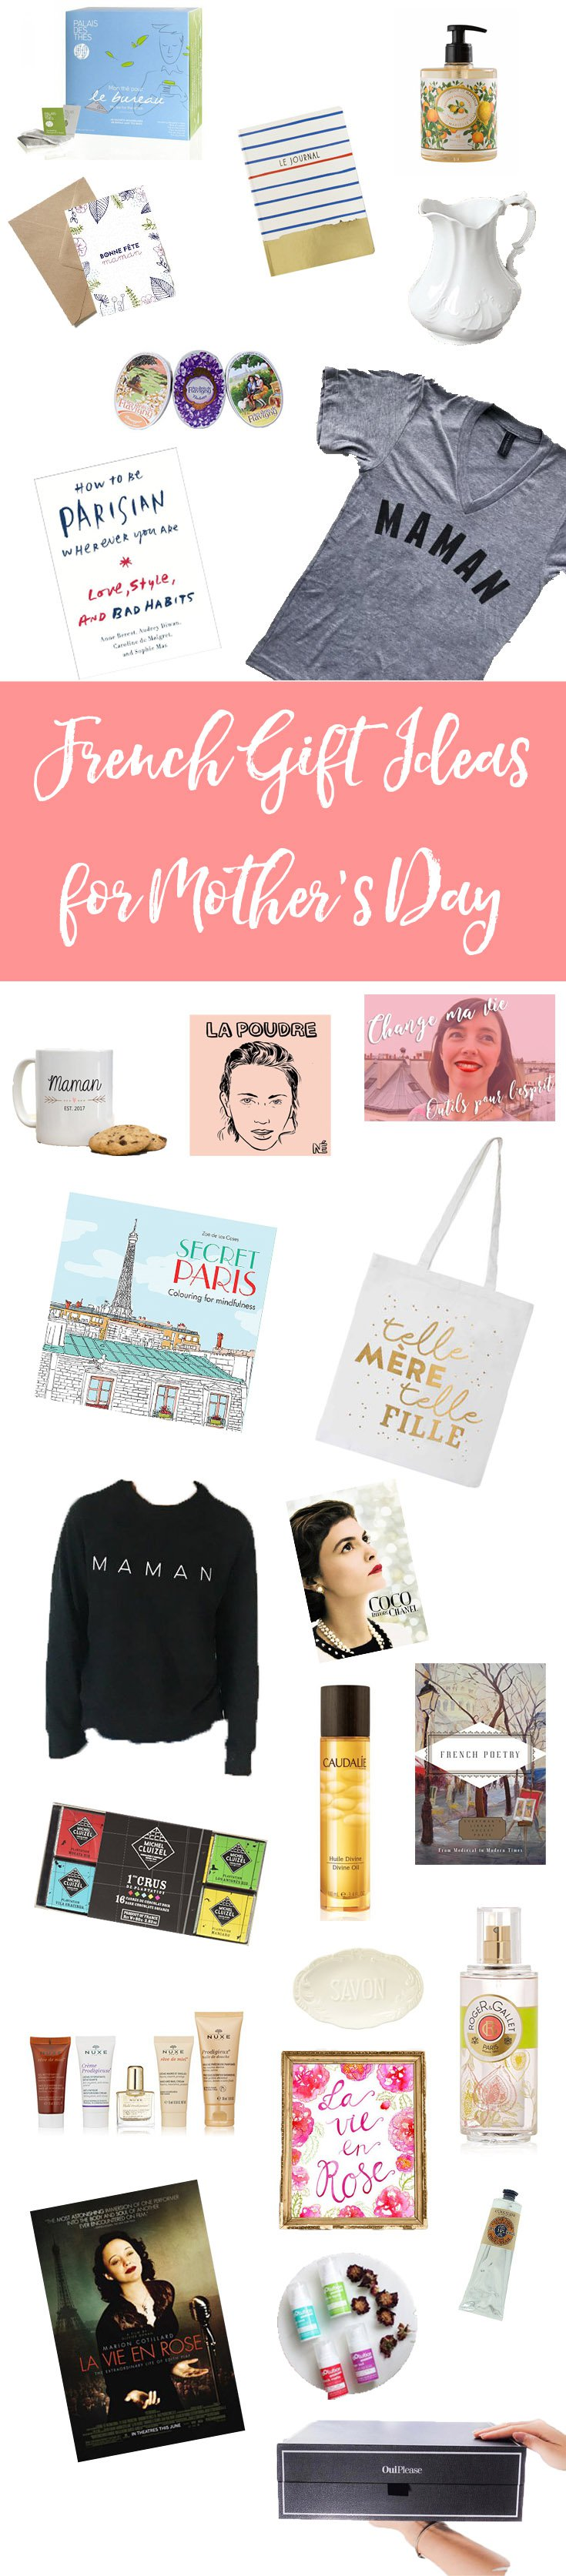 French Mother's Day Gift Ideas: Does your mom love all things French? This Mother's Day, pamper her inner Parisienne with one of my French Mother's Day Gift Ideas!